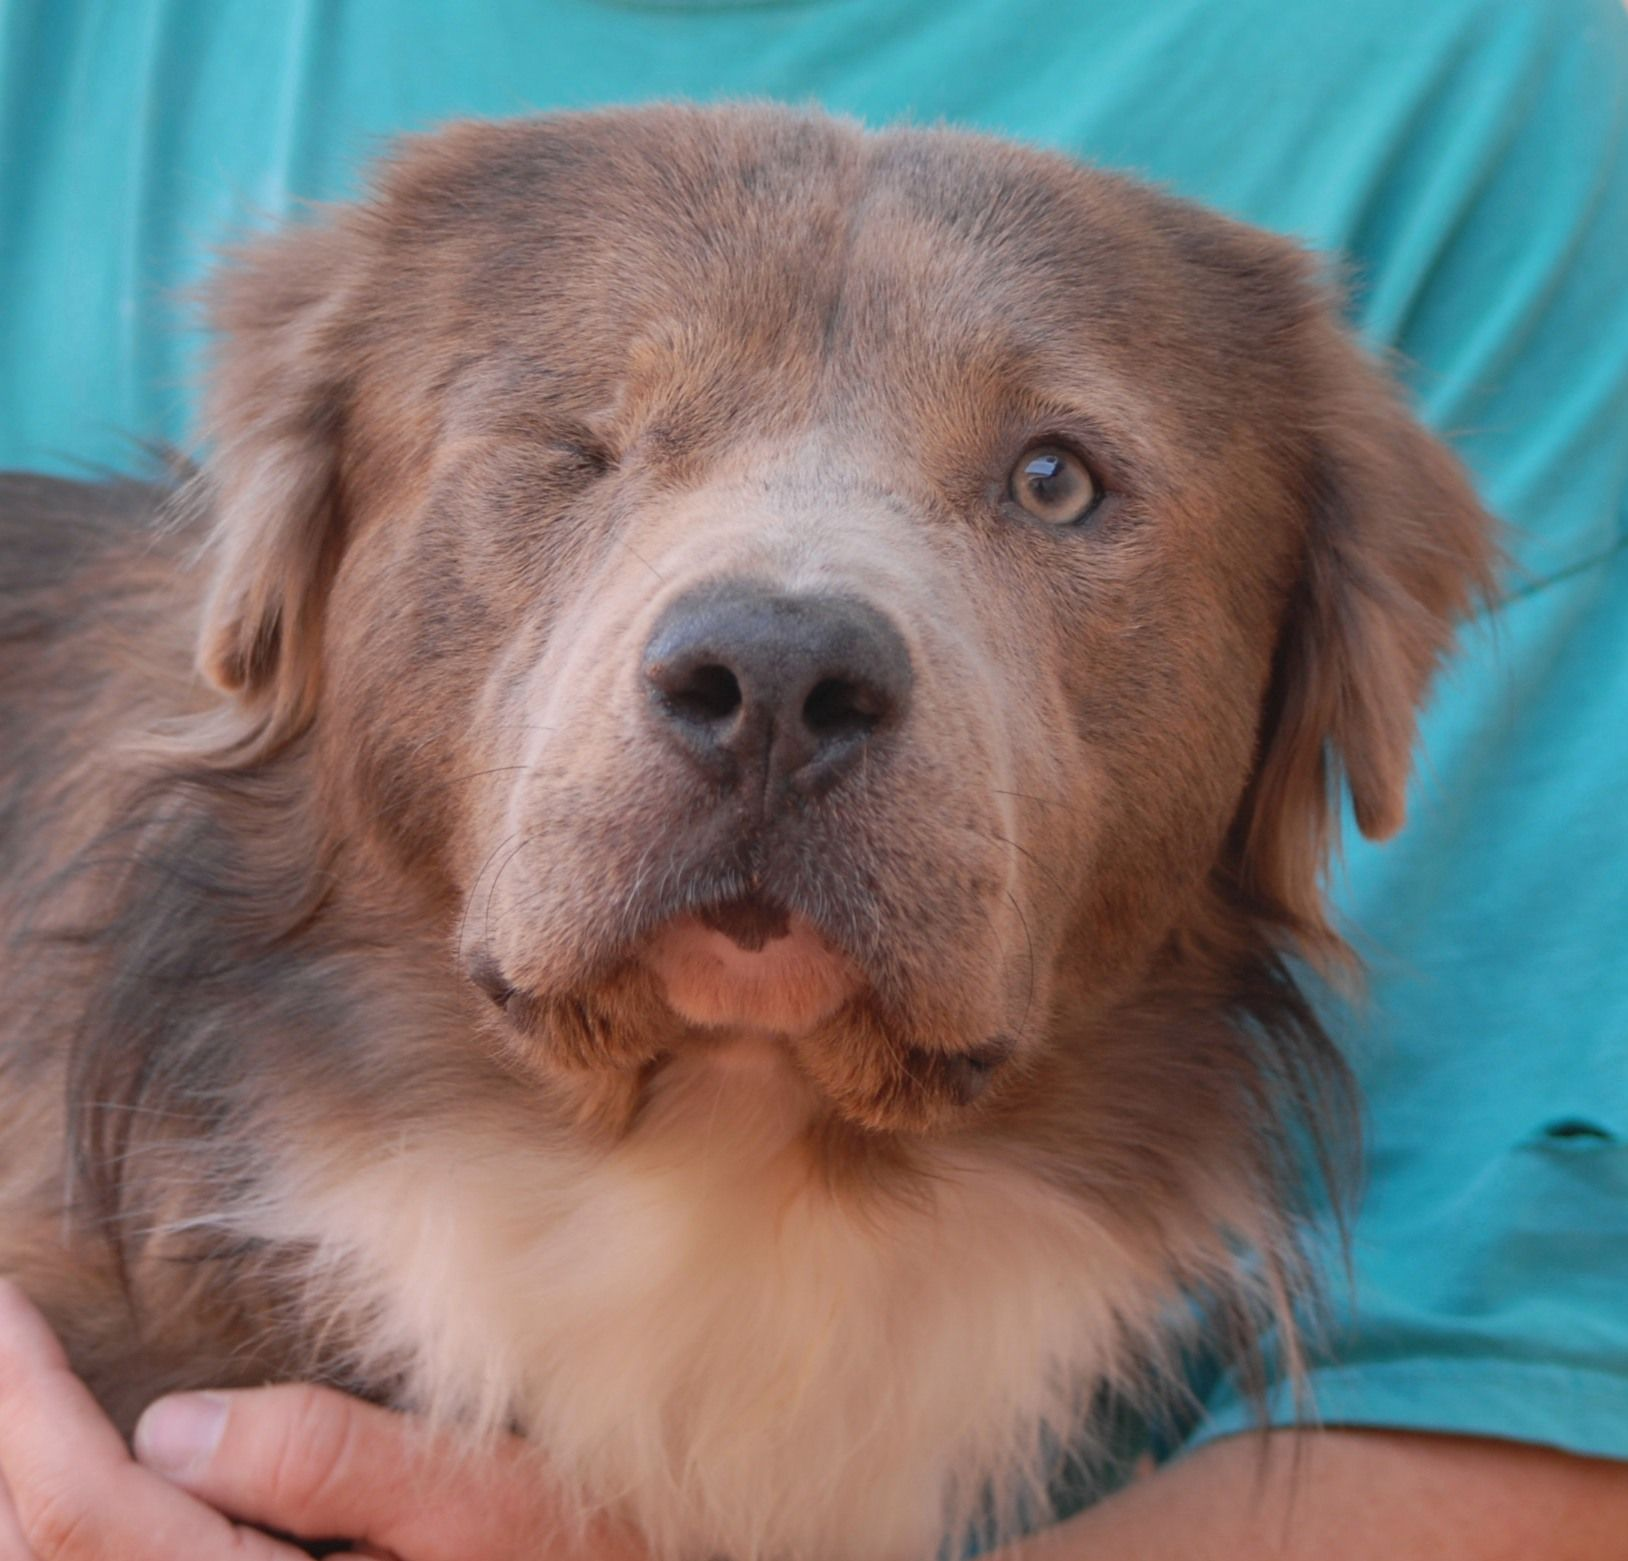 William Is Exceptionally Gentle And Earnest He Wants You To Be Happy With Him William Is An Australian Shephe Dog Adoption Working Dogs